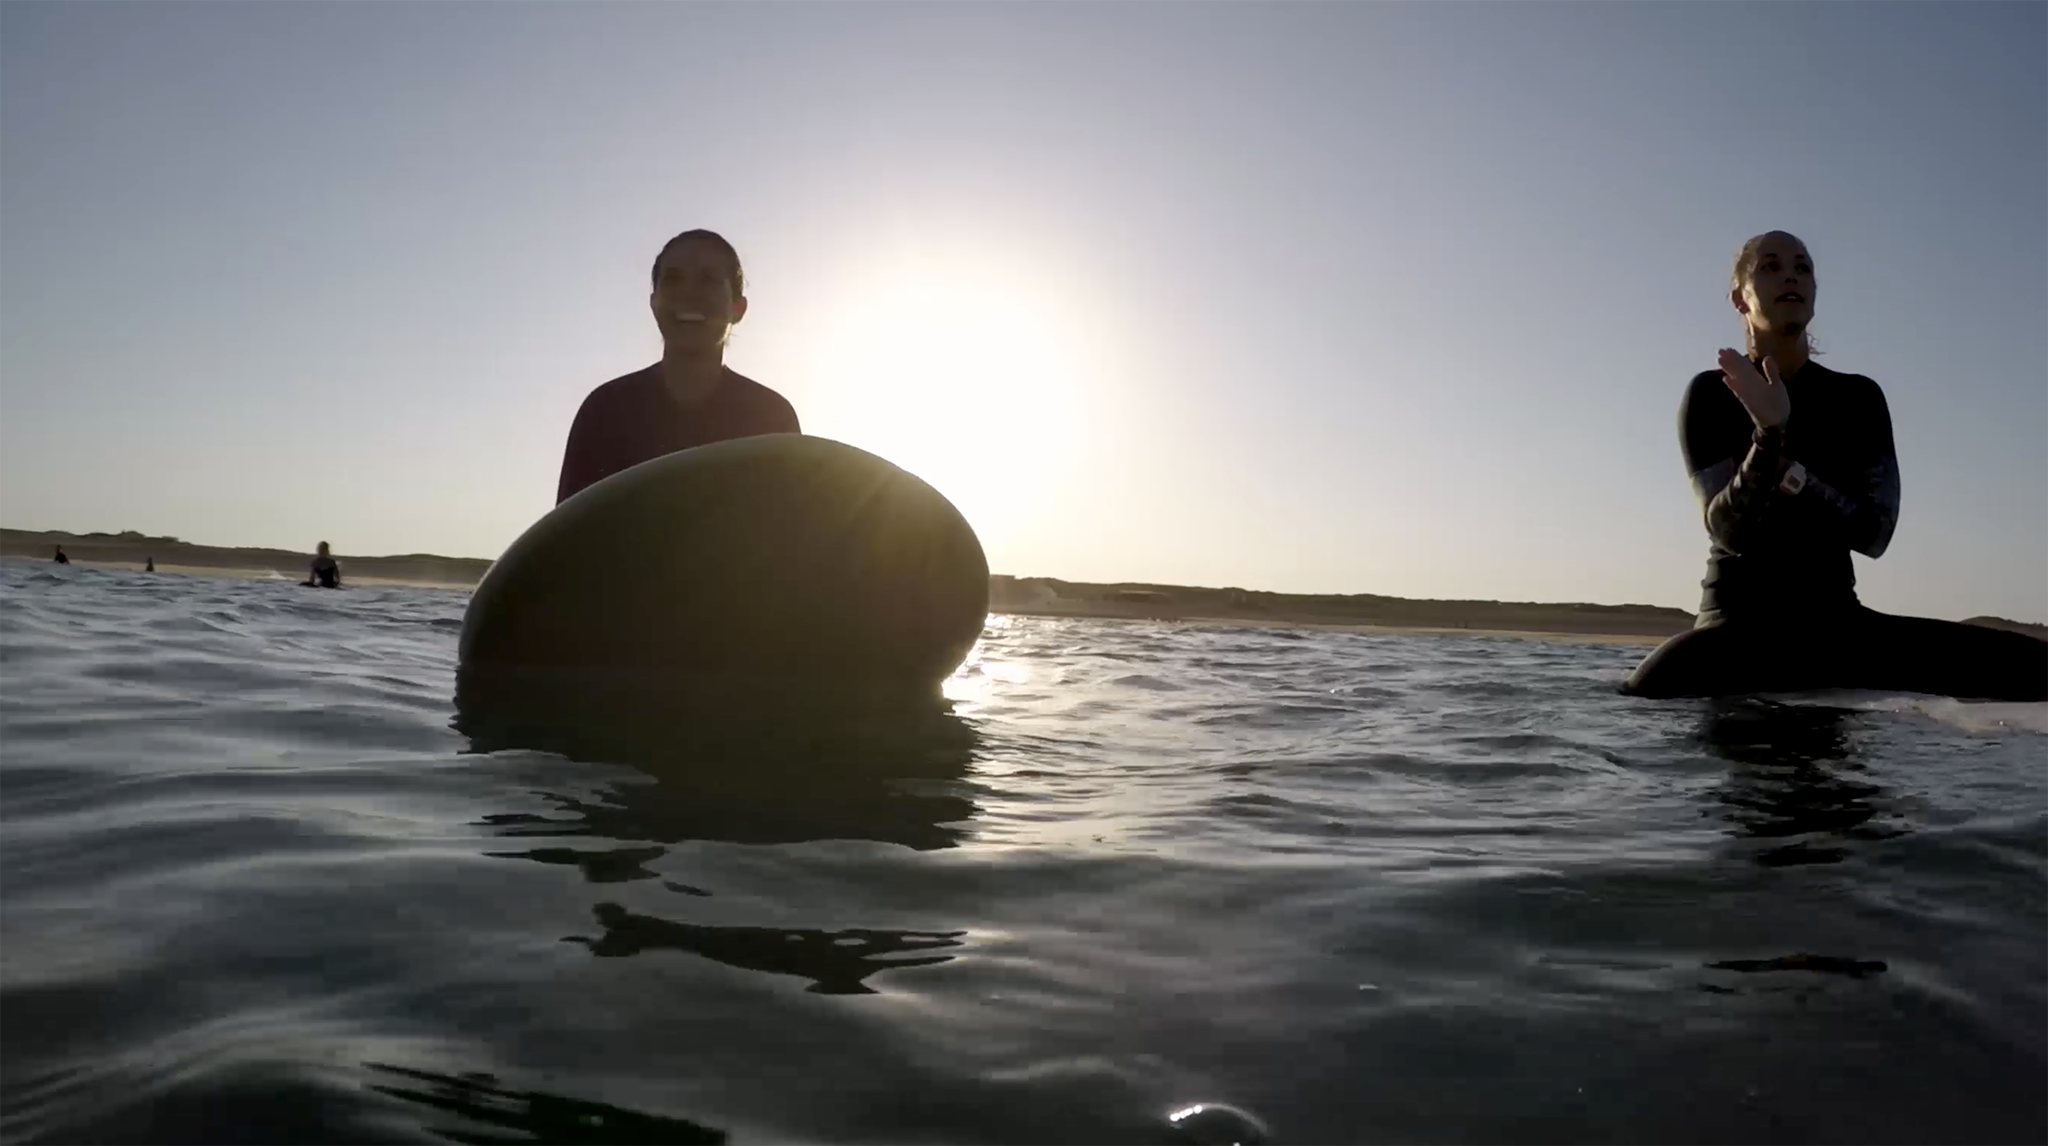 Summer never ends - Film de surf GoPro - Julie et Noémi